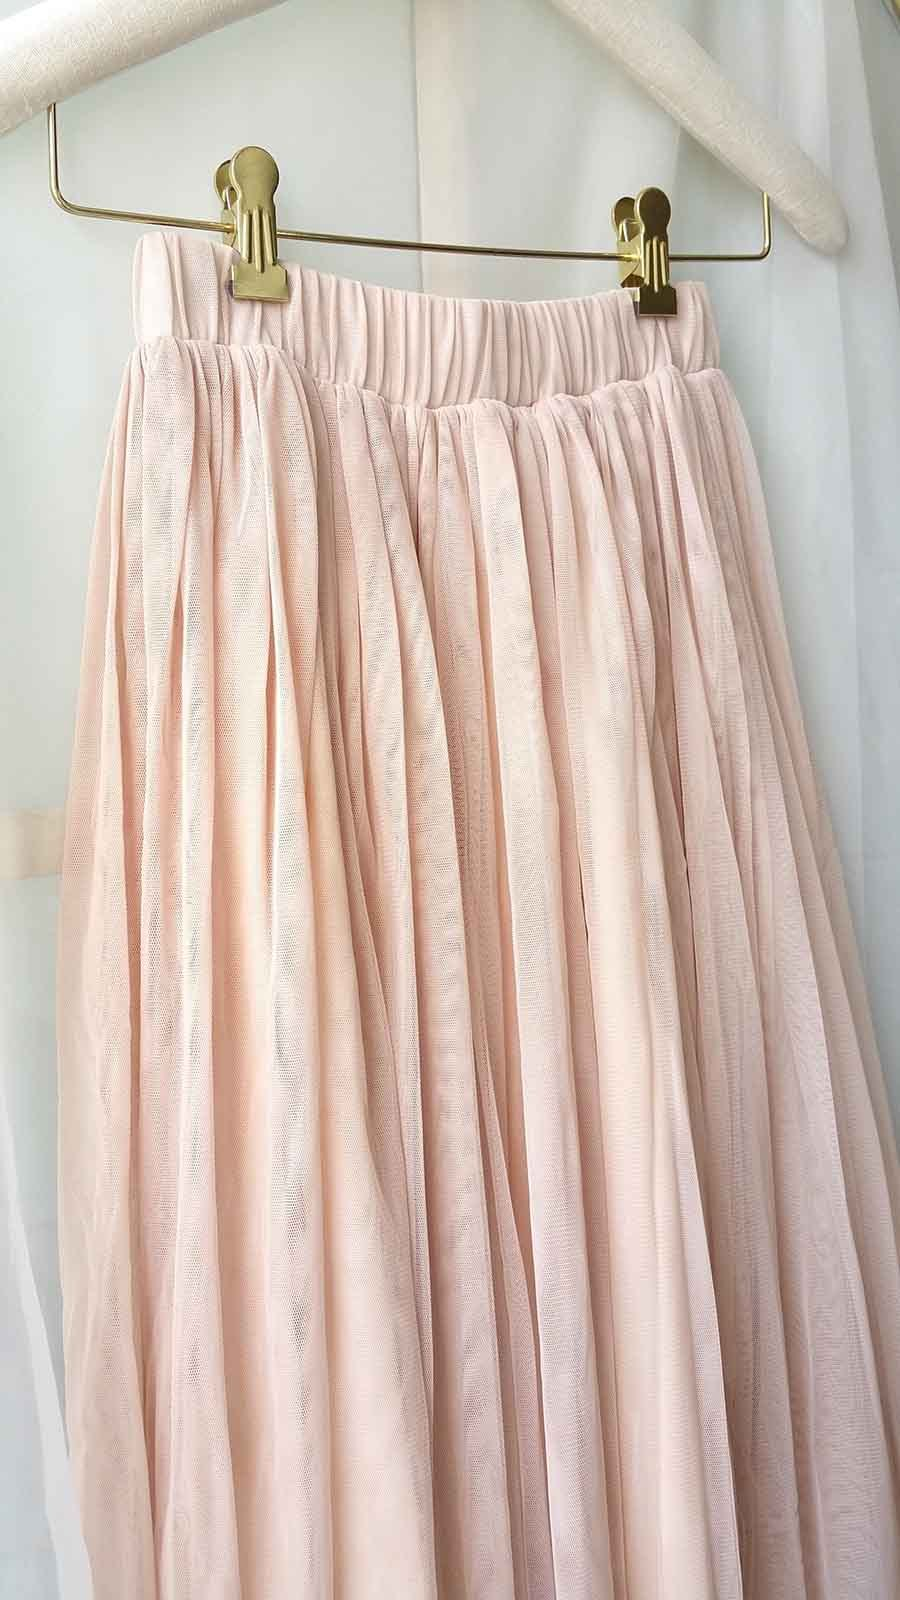 "Blush Long Tulle Skirt Blush Wedding Bridesmaid Skirt High Waisted 27.5"" long"